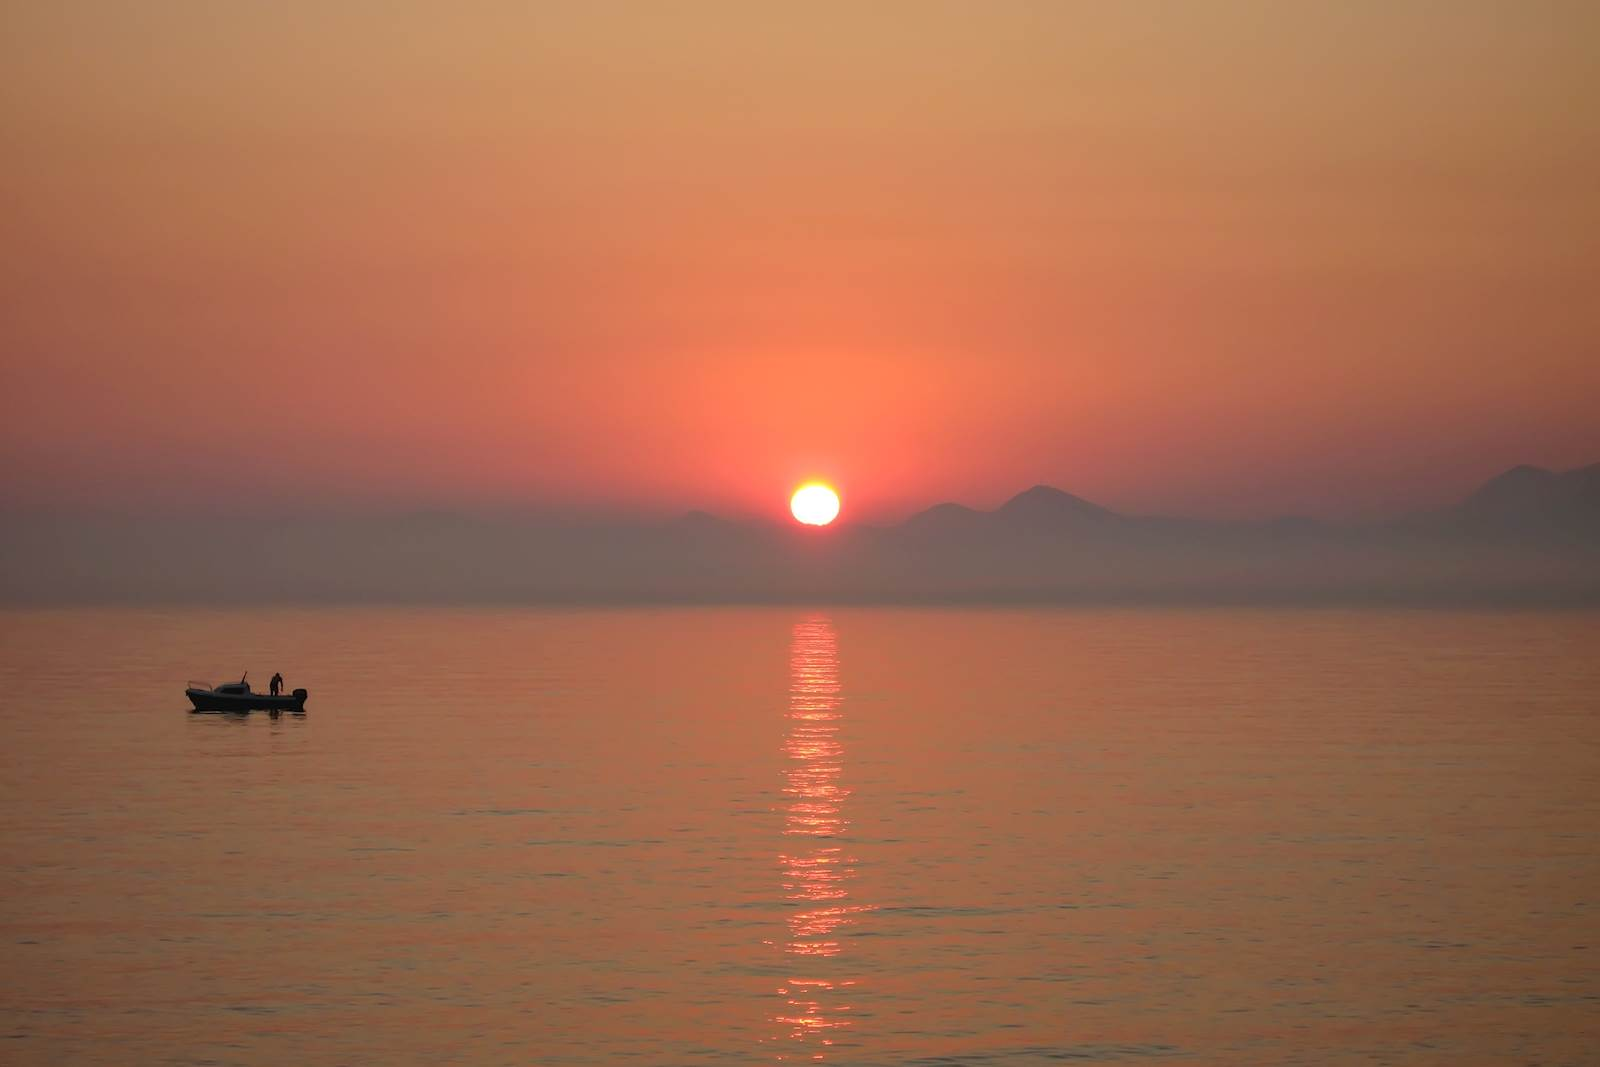 -images-excursions-elaphite-islands-speed-boat-excursion--zz-dubrovnik-boat-charter-adriaticglobal-sunset.jpg